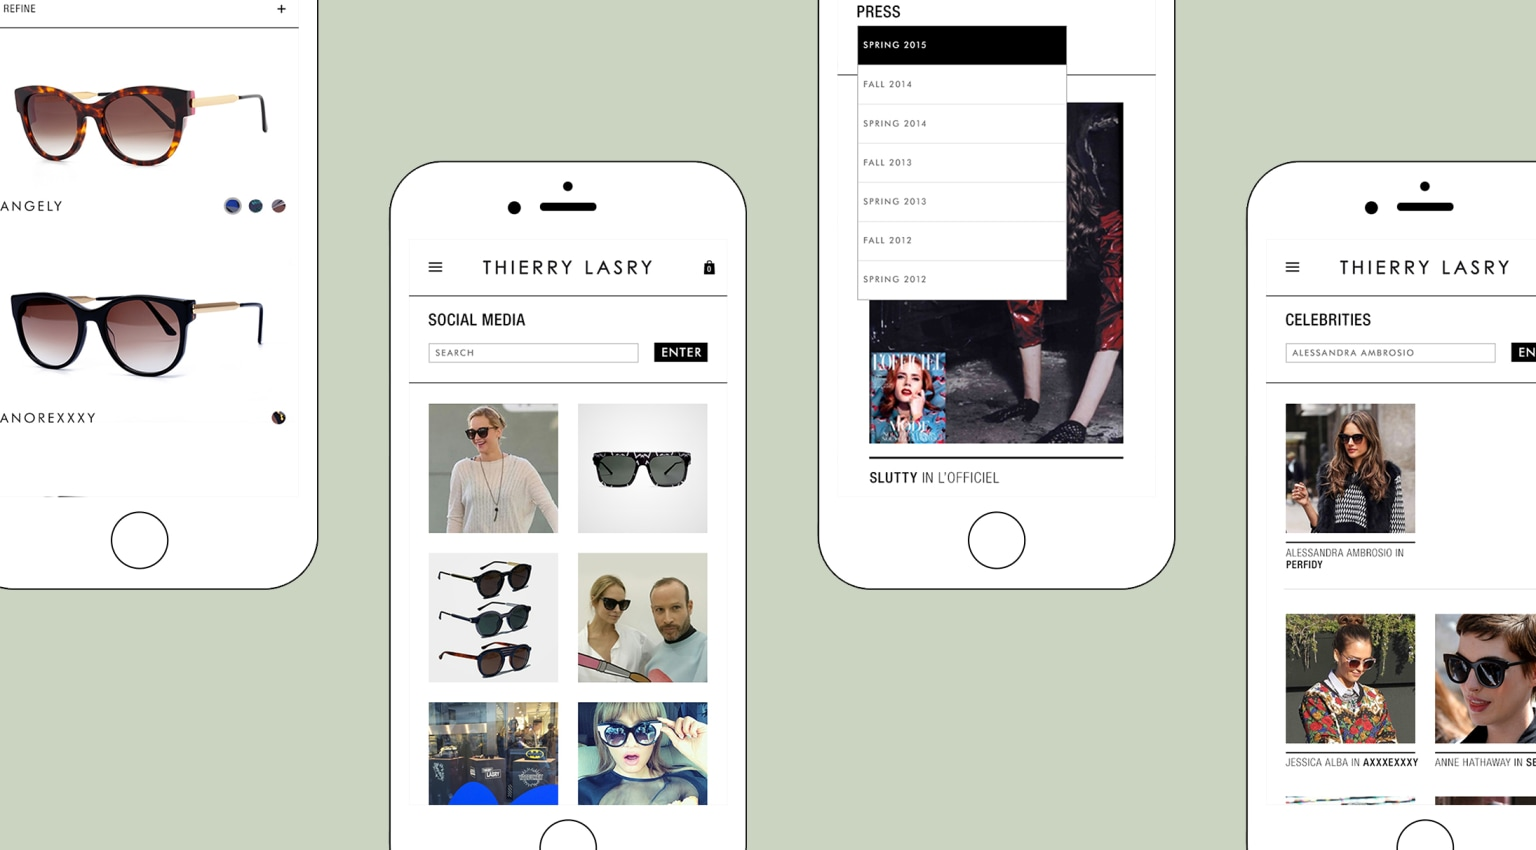 Thierry Lasry: Mobile Website